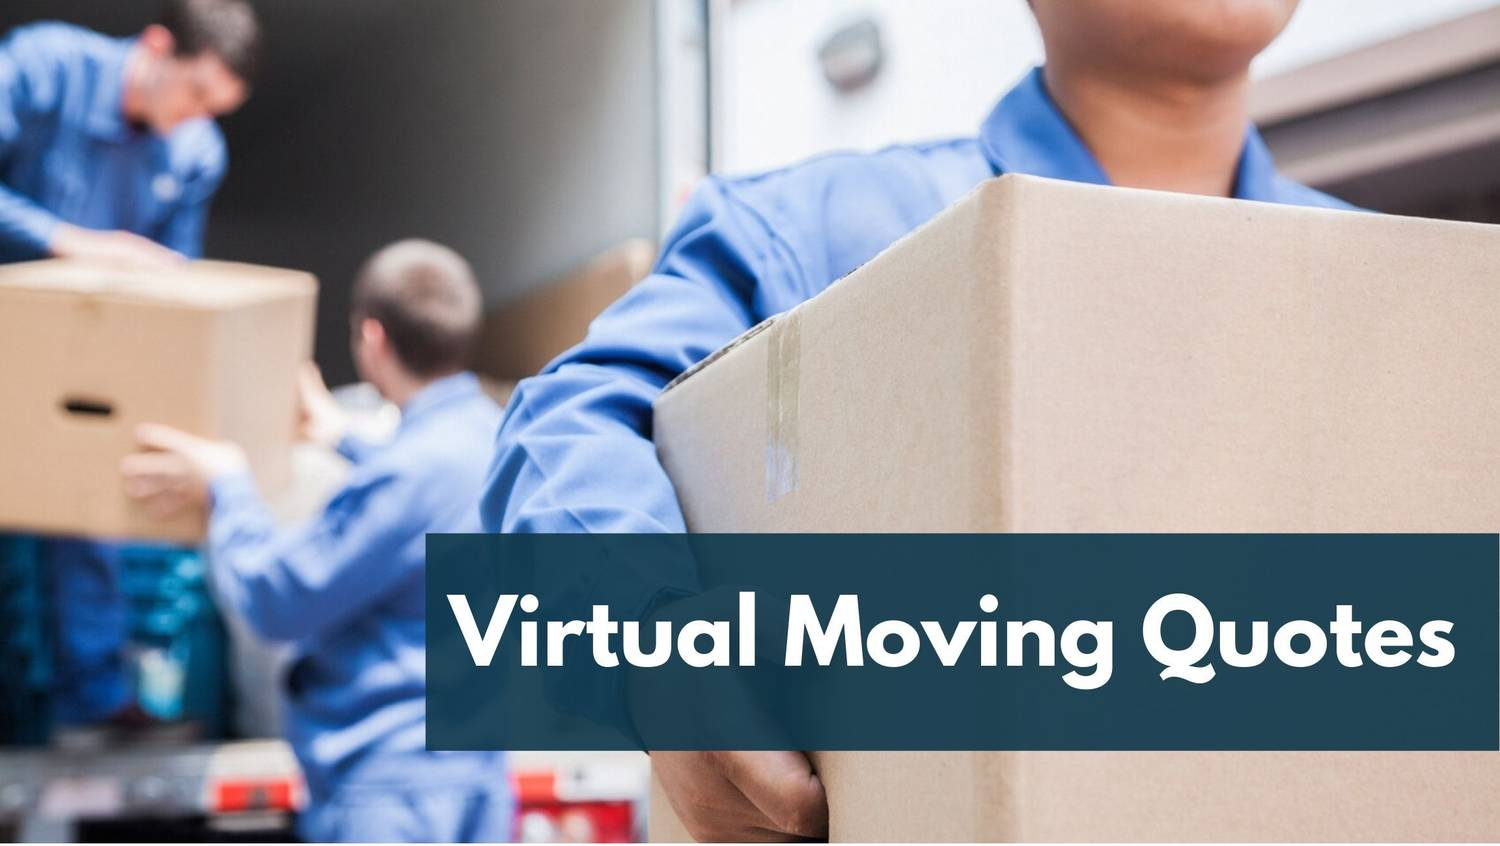 Virtual Moving Quotes